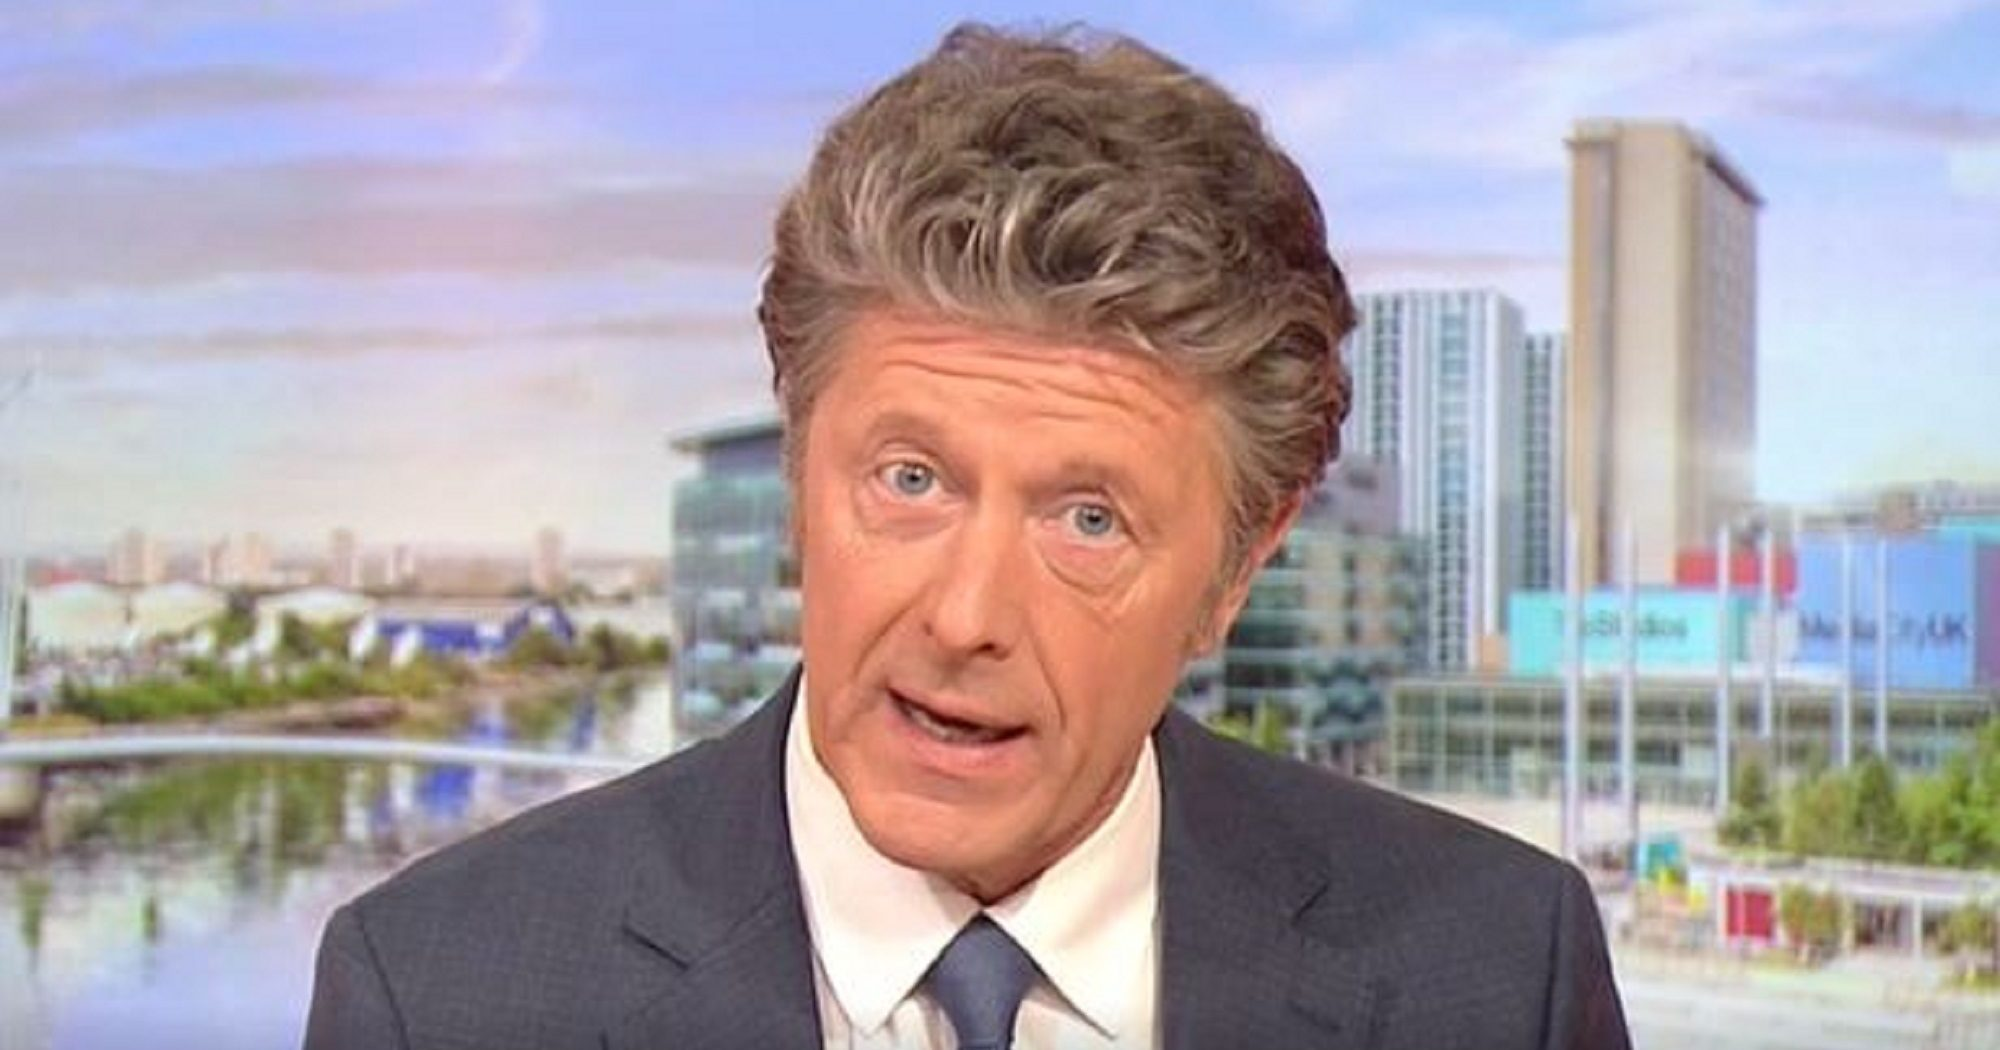 BBC Breakfast viewers spot embarrassing blunder as Charlie Stayt talks about WWII veteran Tom Moore